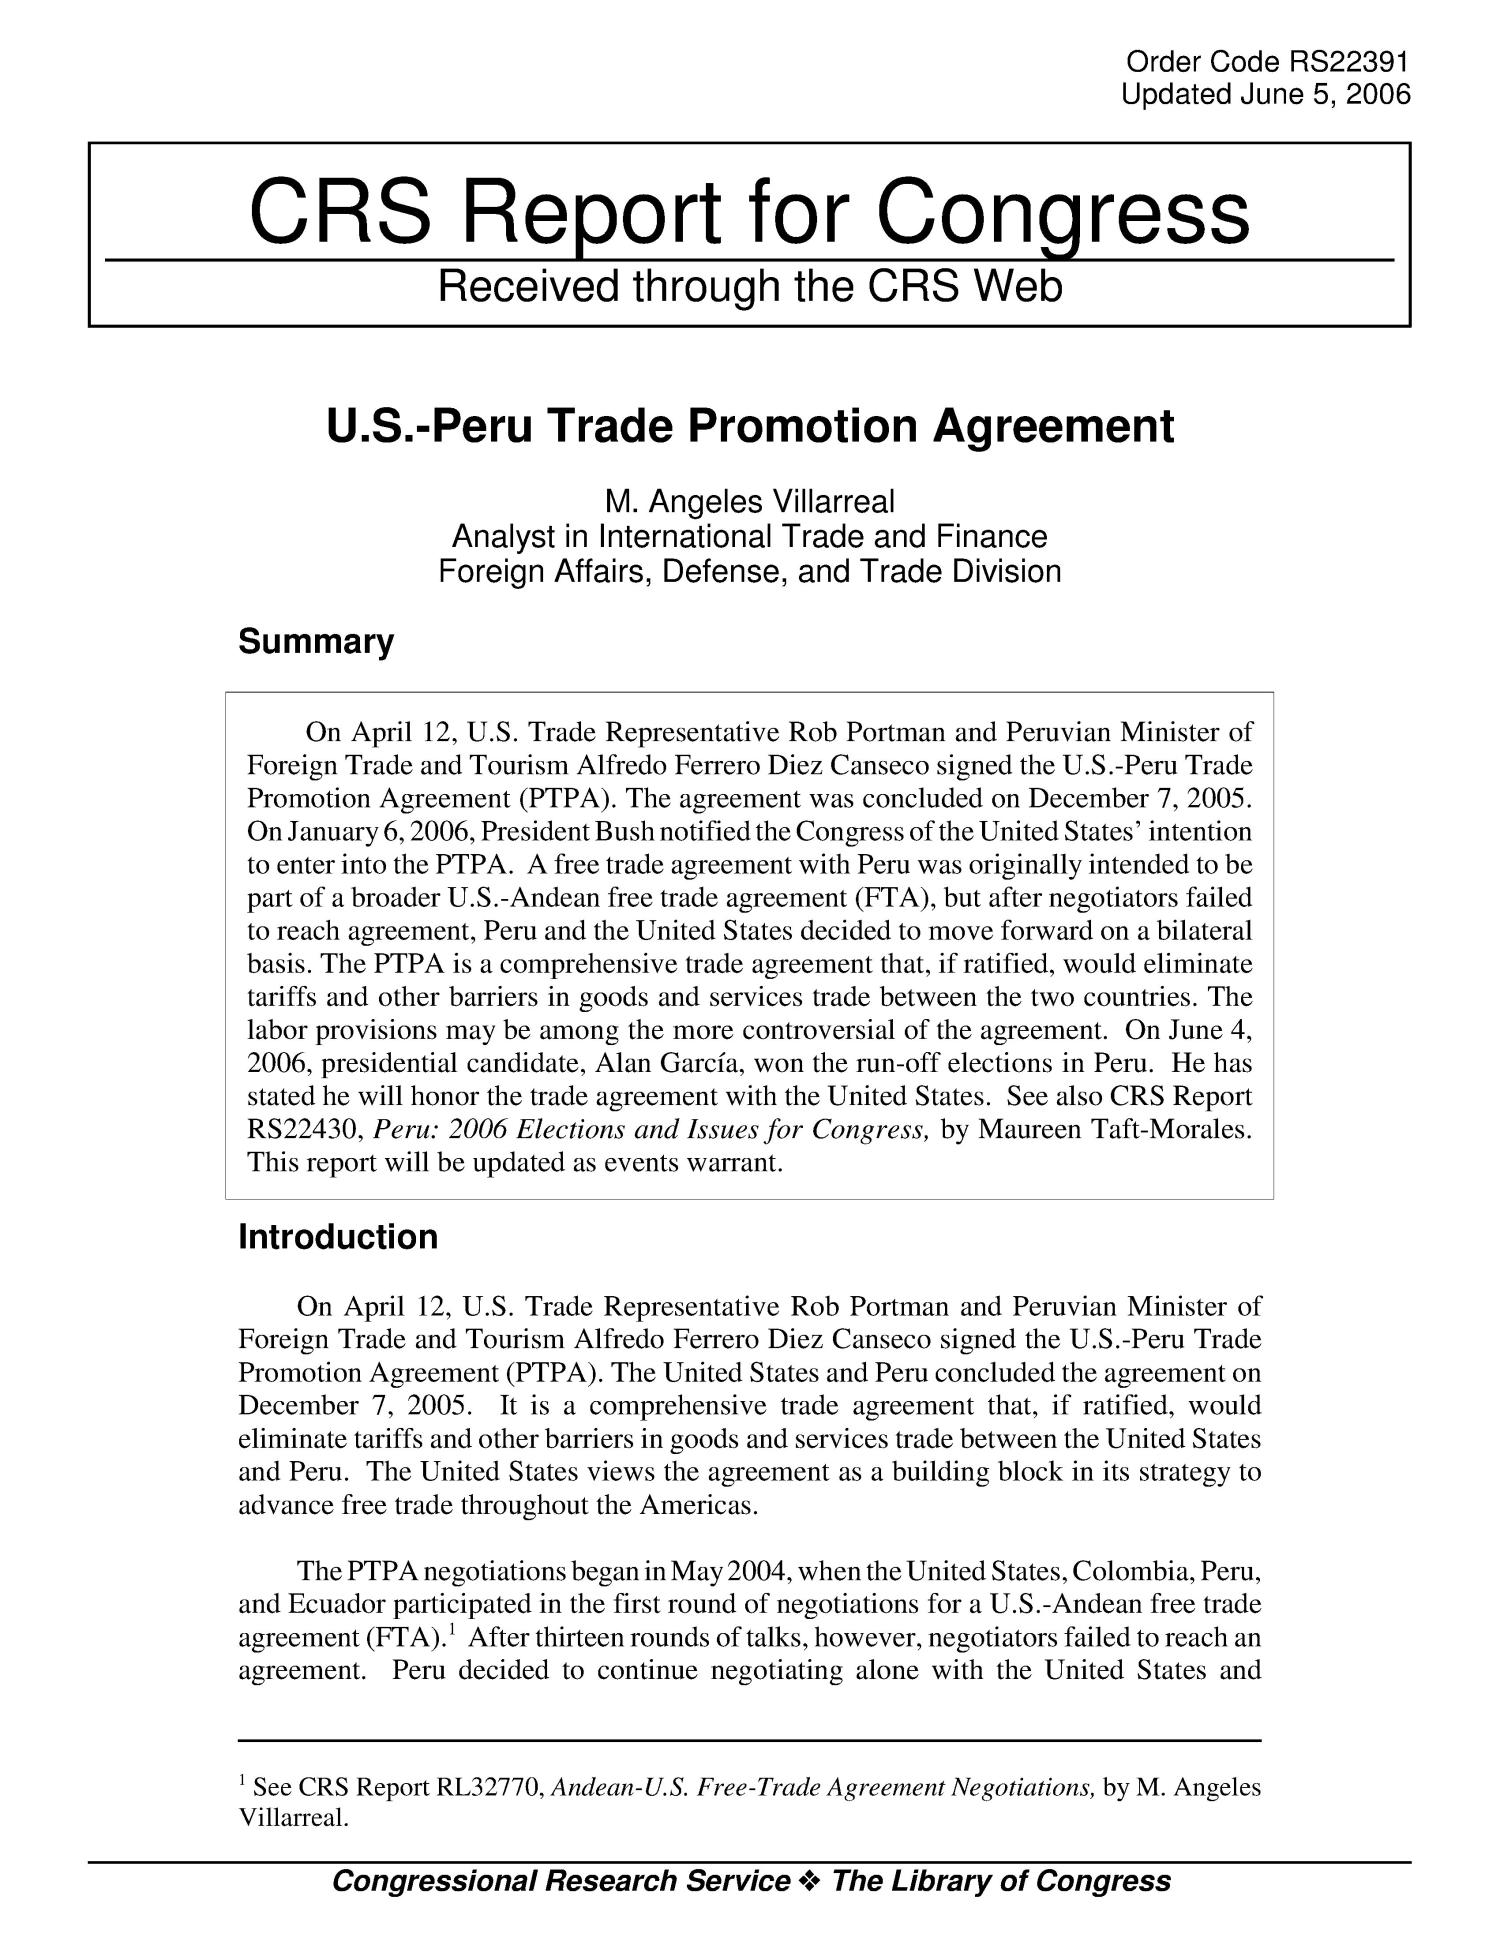 Us Peru Trade Promotion Agreement Digital Library